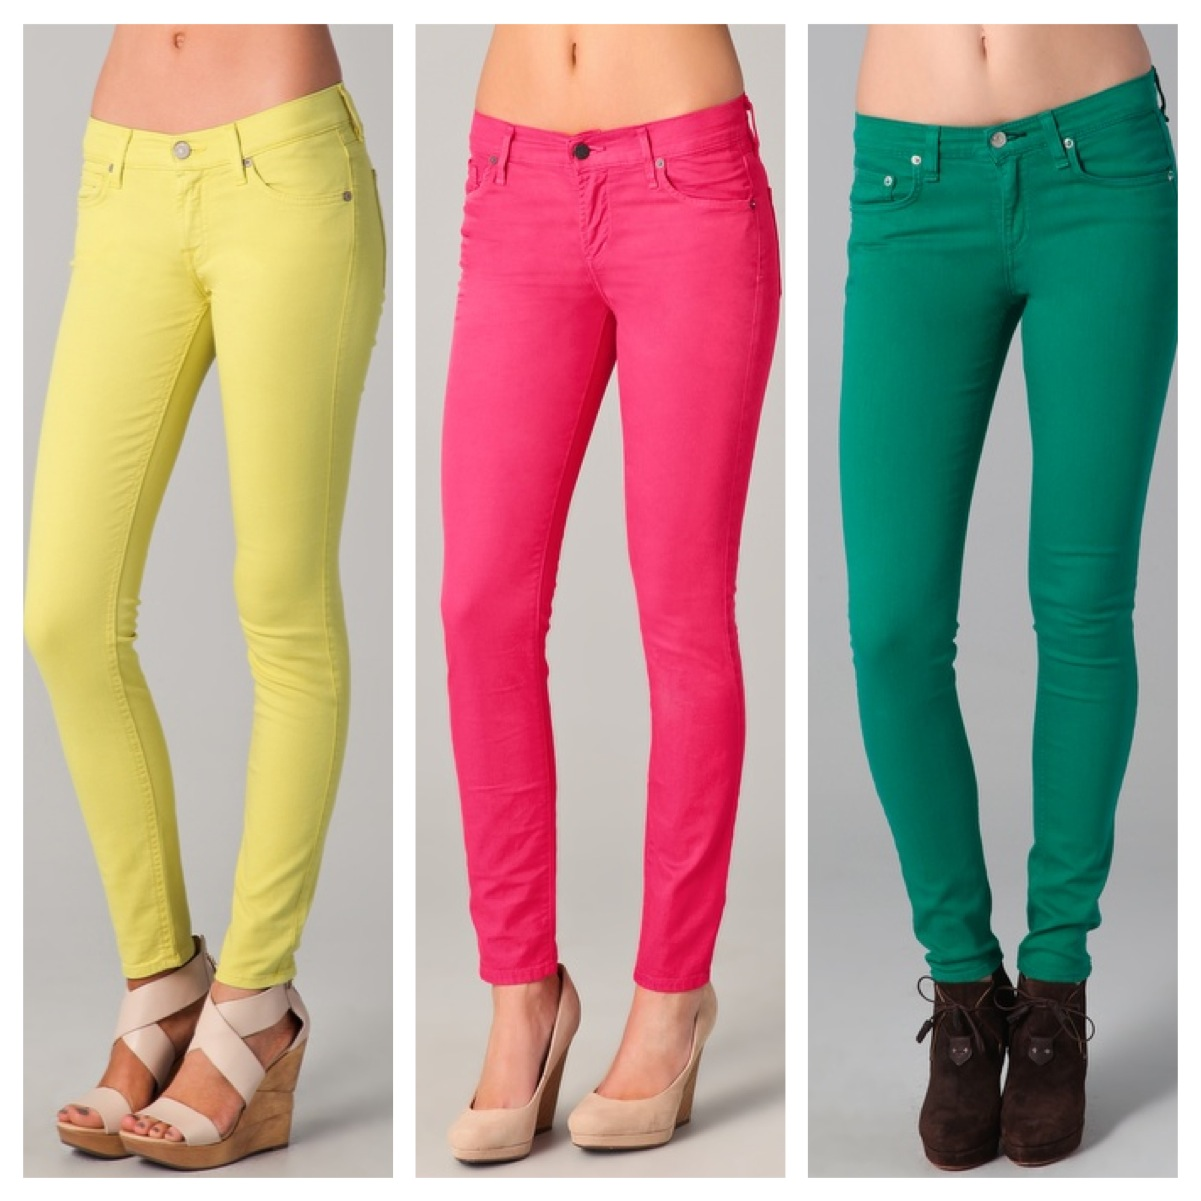 Find great deals on eBay for colored jeans. Shop with confidence.